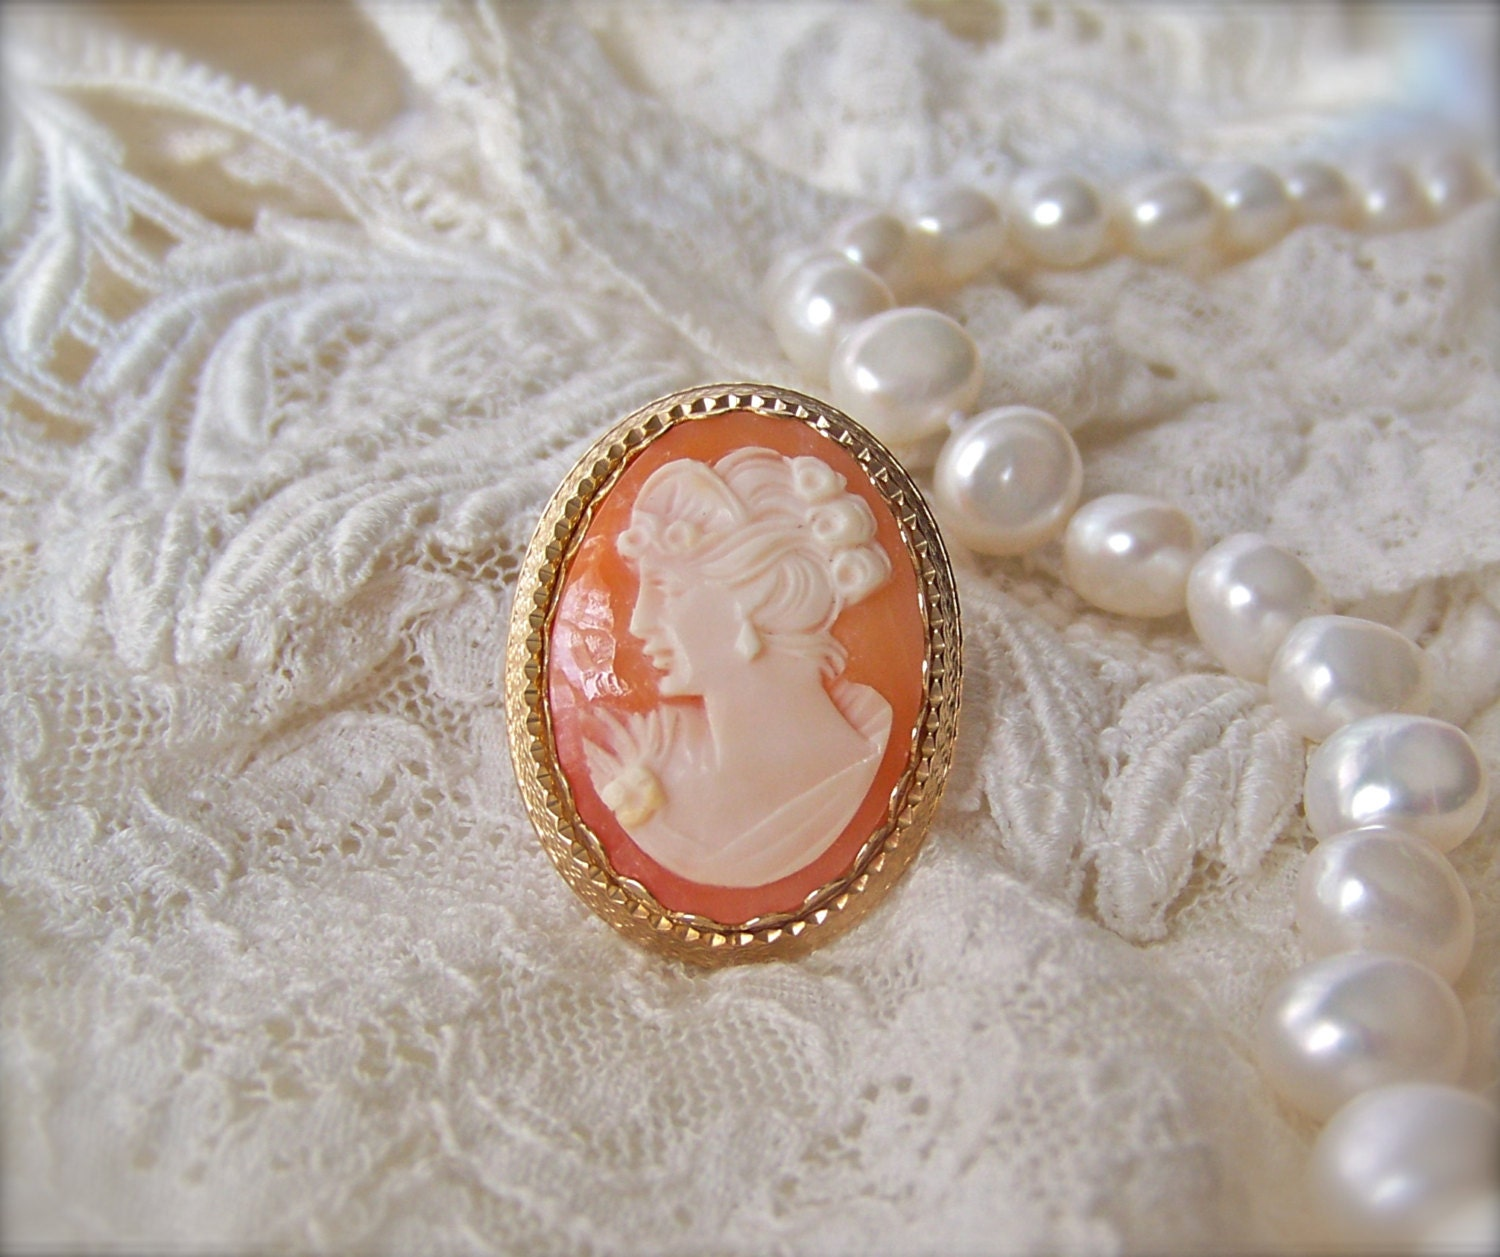 Custom Cameo Resin Pins Diy: Antique Cameo Brooch Pendant 14KGF Hand Carved By